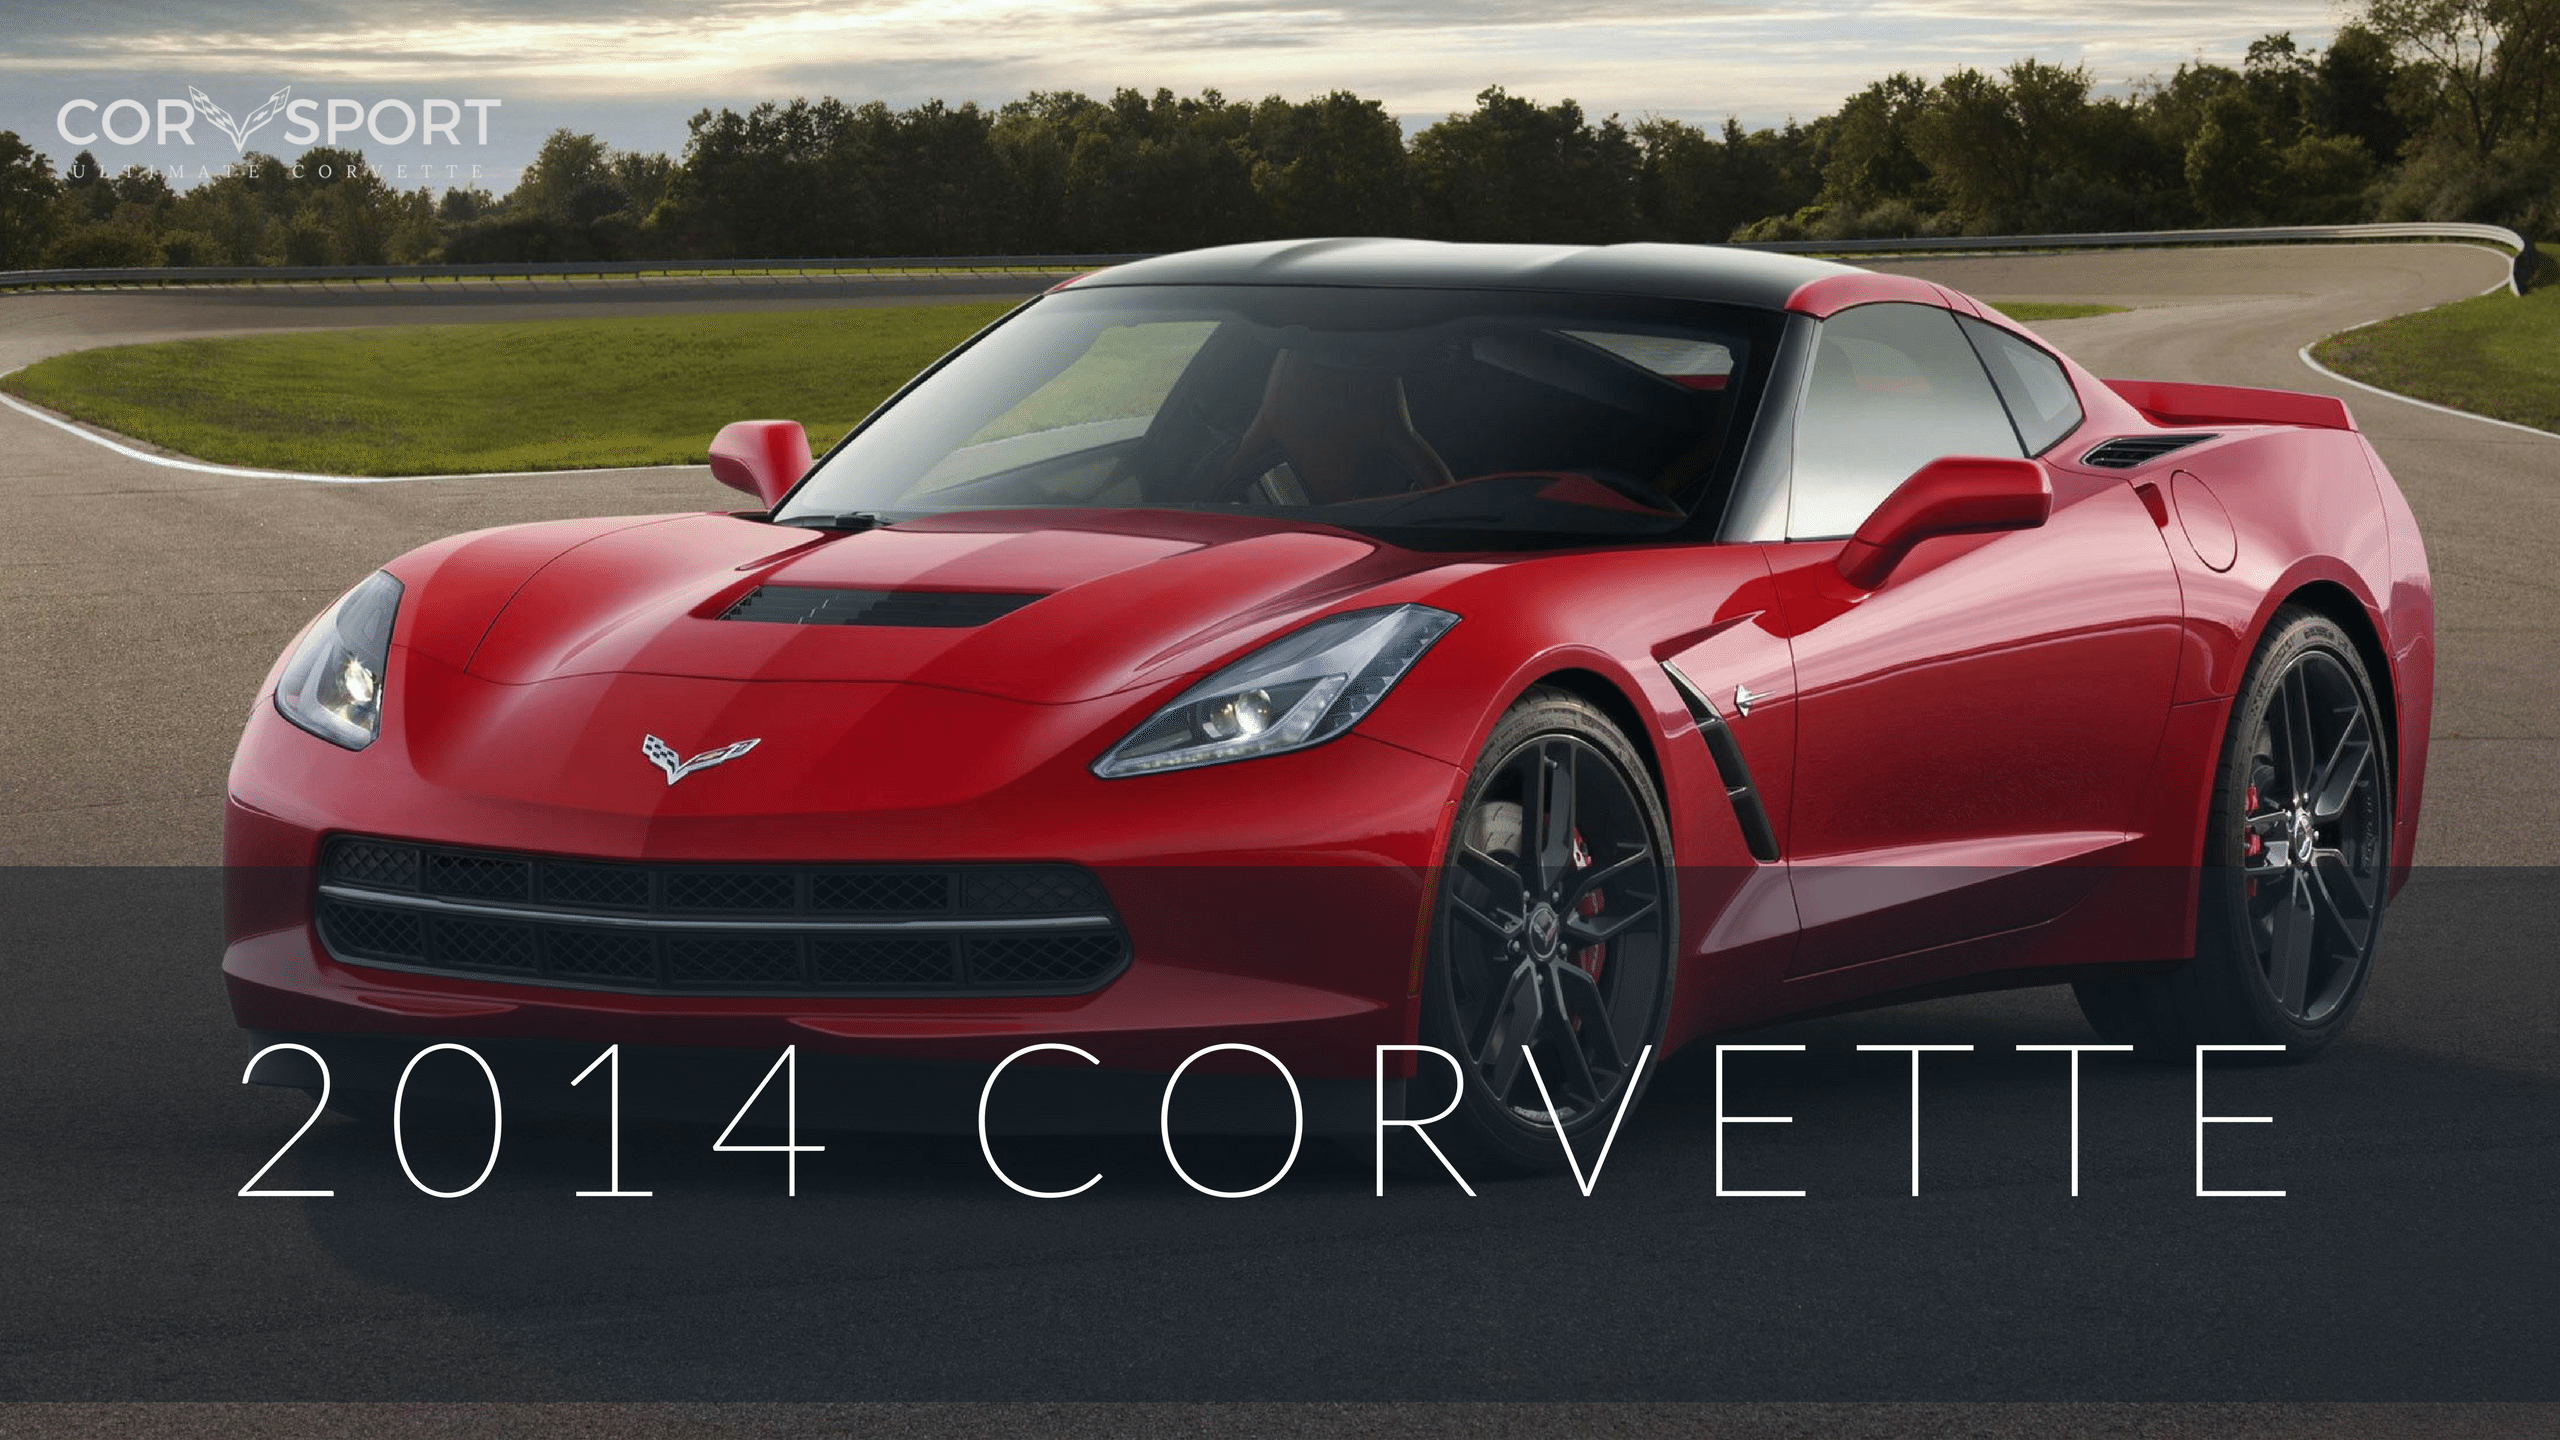 Corvette Models Full List of Chevrolet Corvette Models & Years